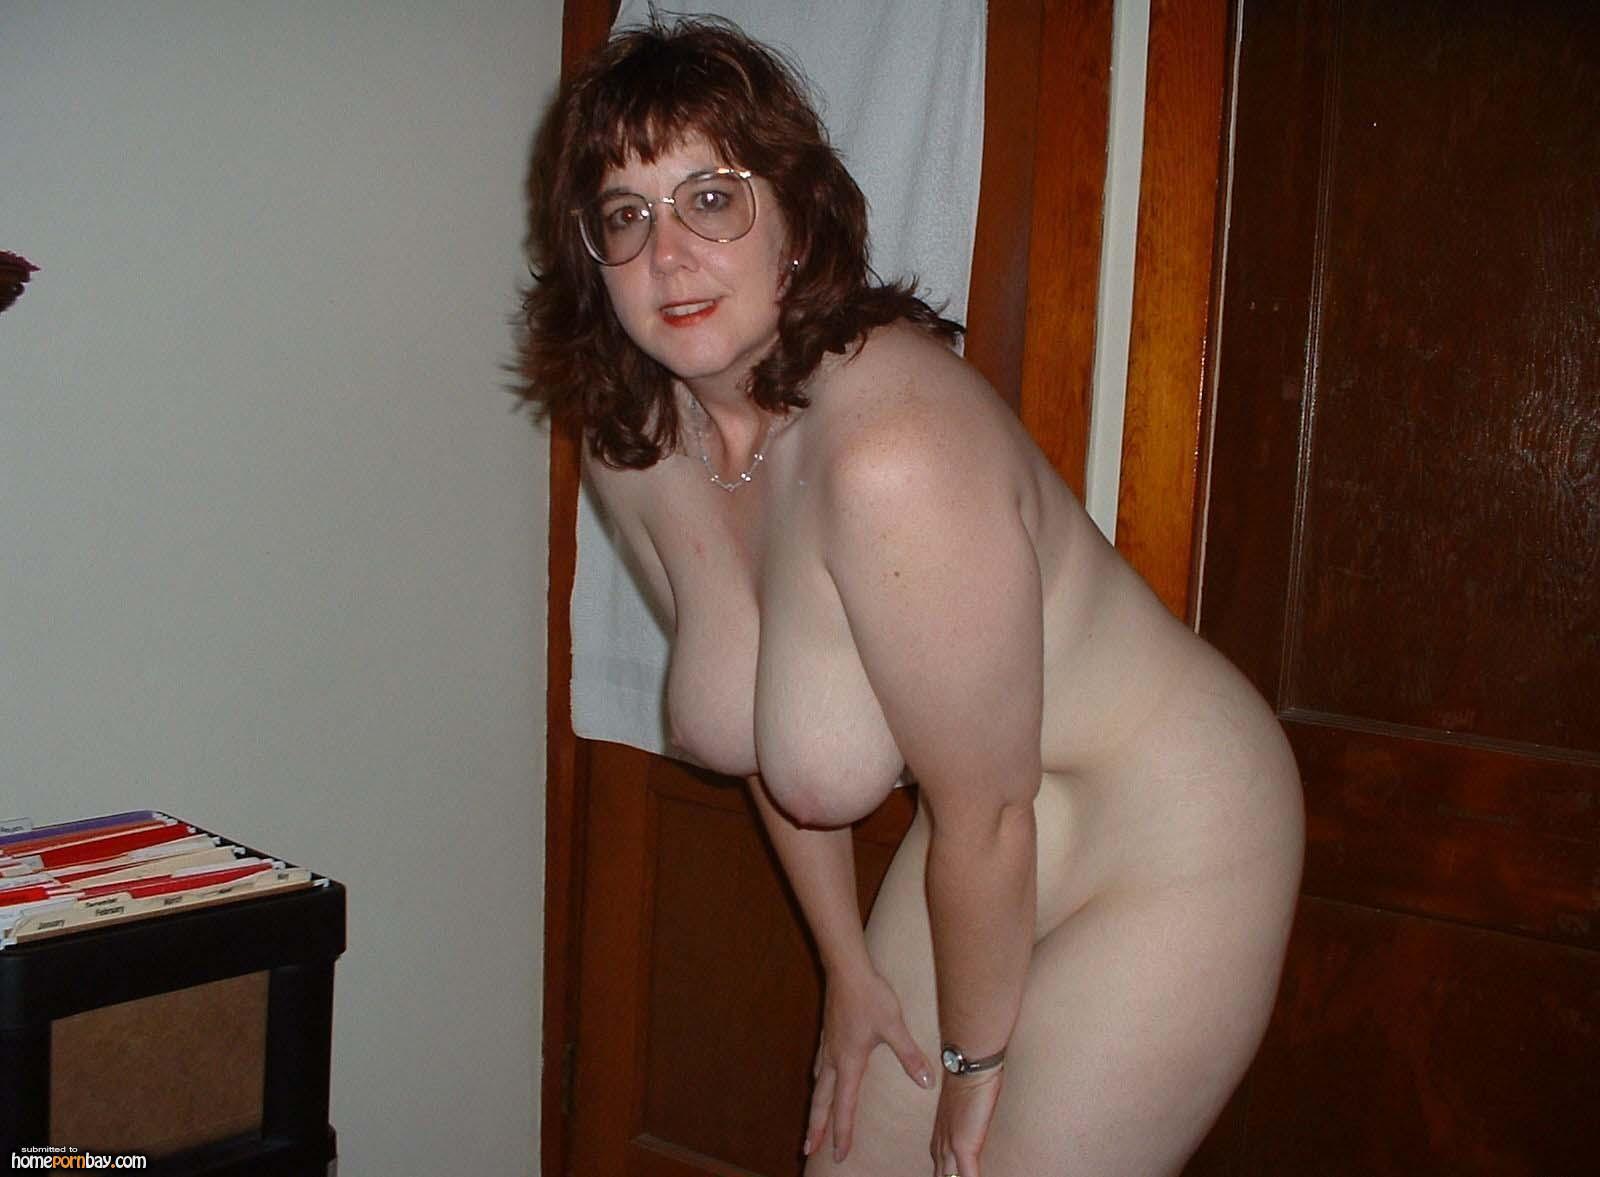 Wife with glasses naked